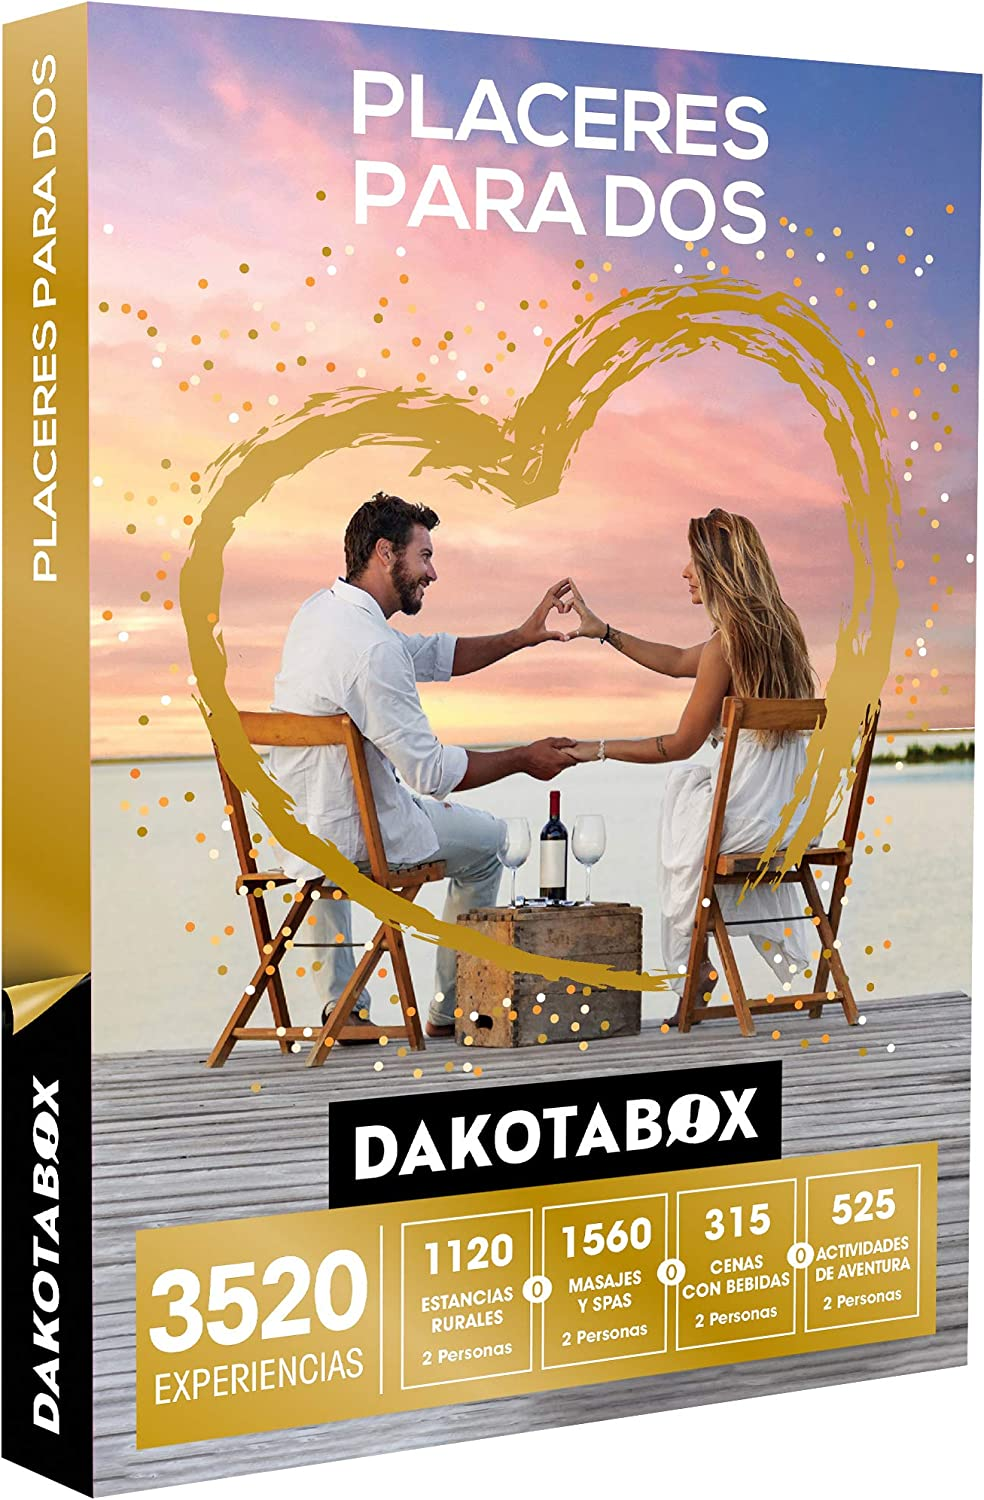 DAKOTABOX - Caja Regalo - PLACERES para Dos - 3520 Experiencias ...